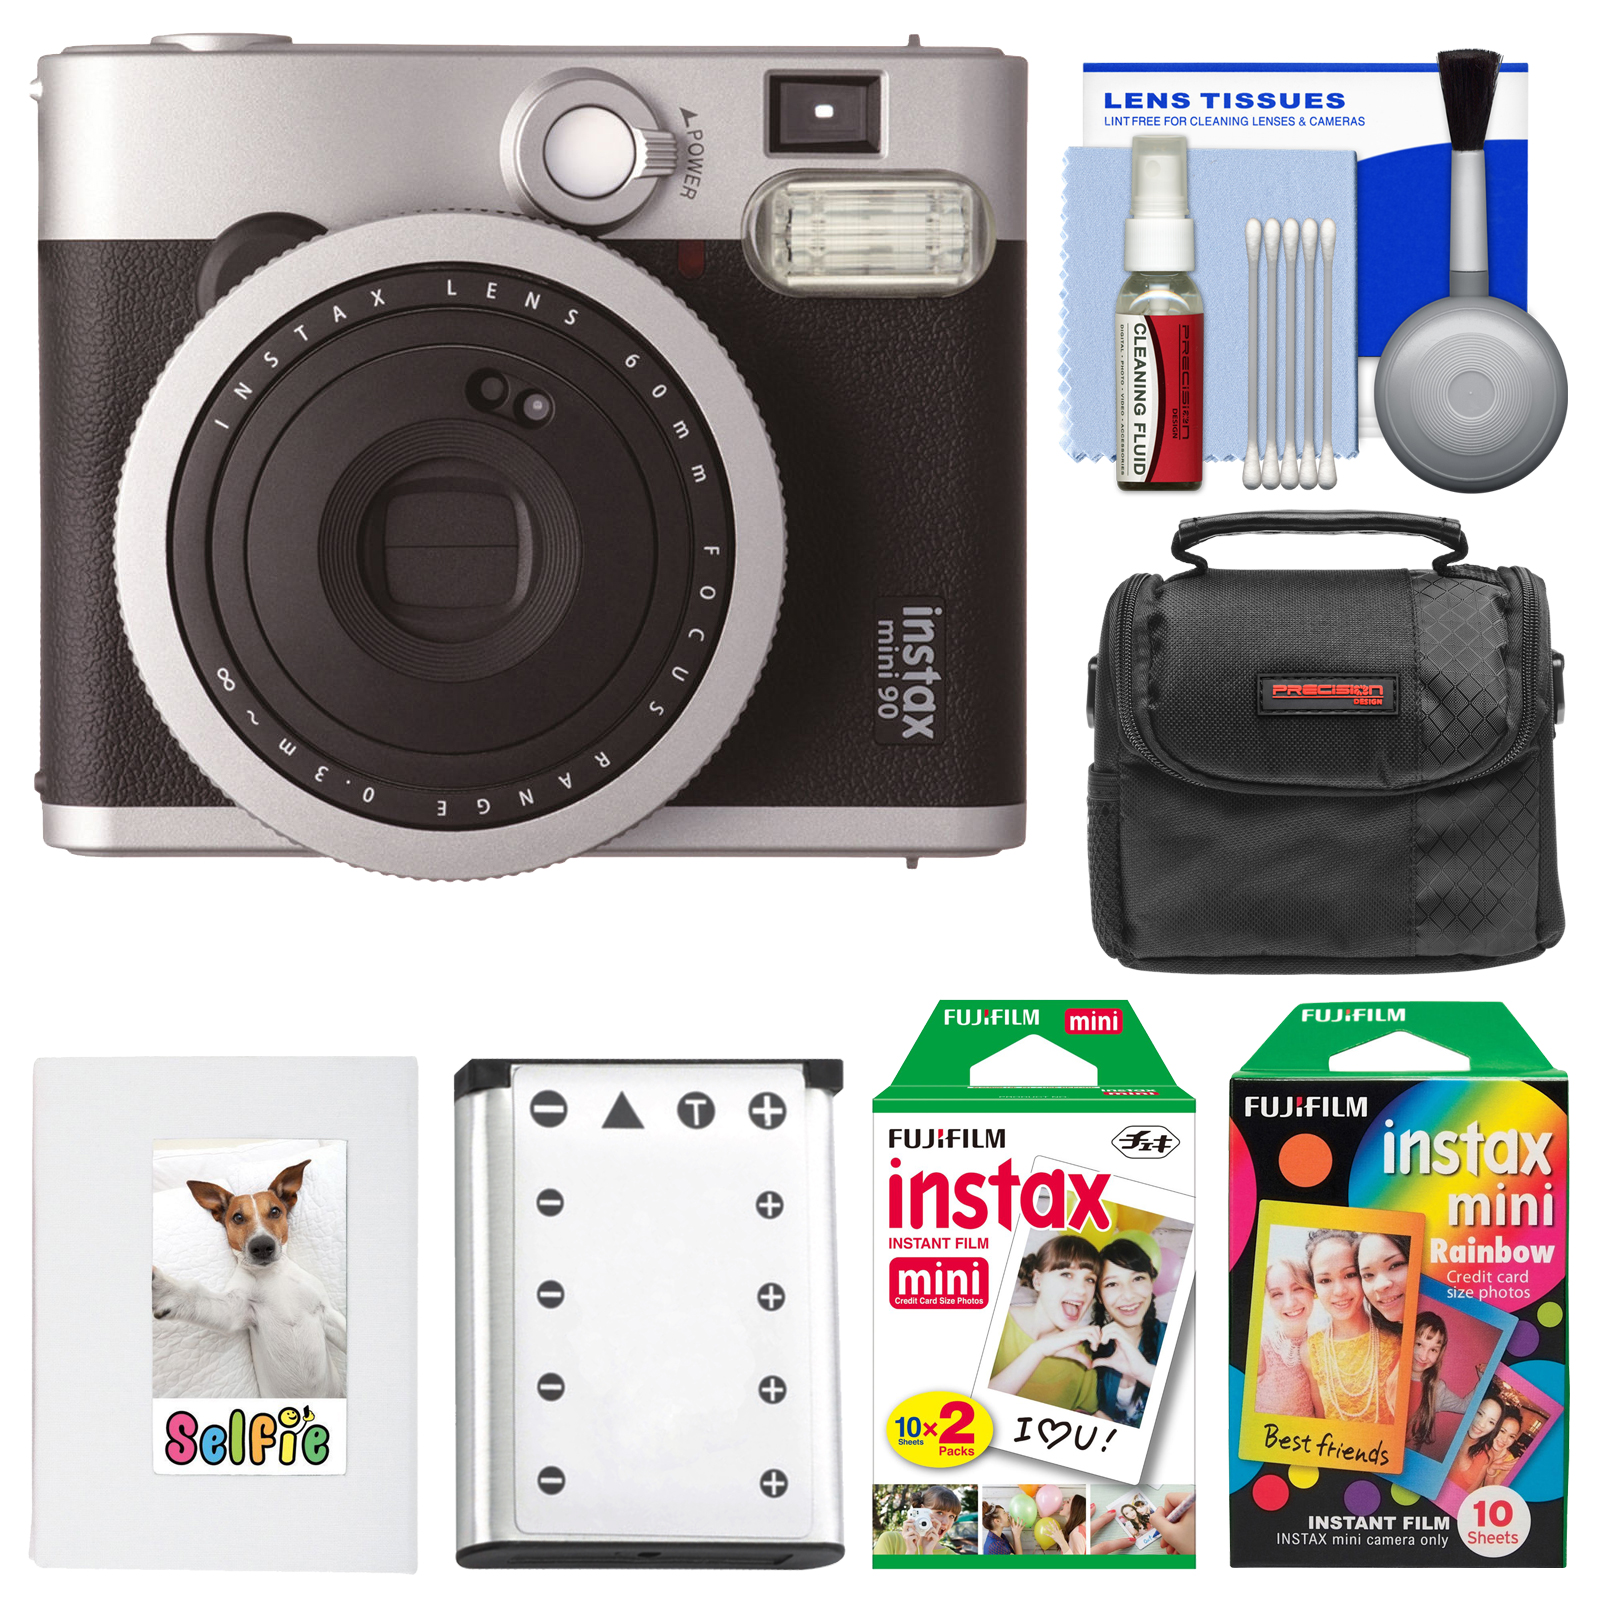 Fujifilm Instax Mini 90 Neo Classic Instant Film Camera with 20 Twin Prints & 10 Rainbow Prints + Case + Battery + Photo Album Kit